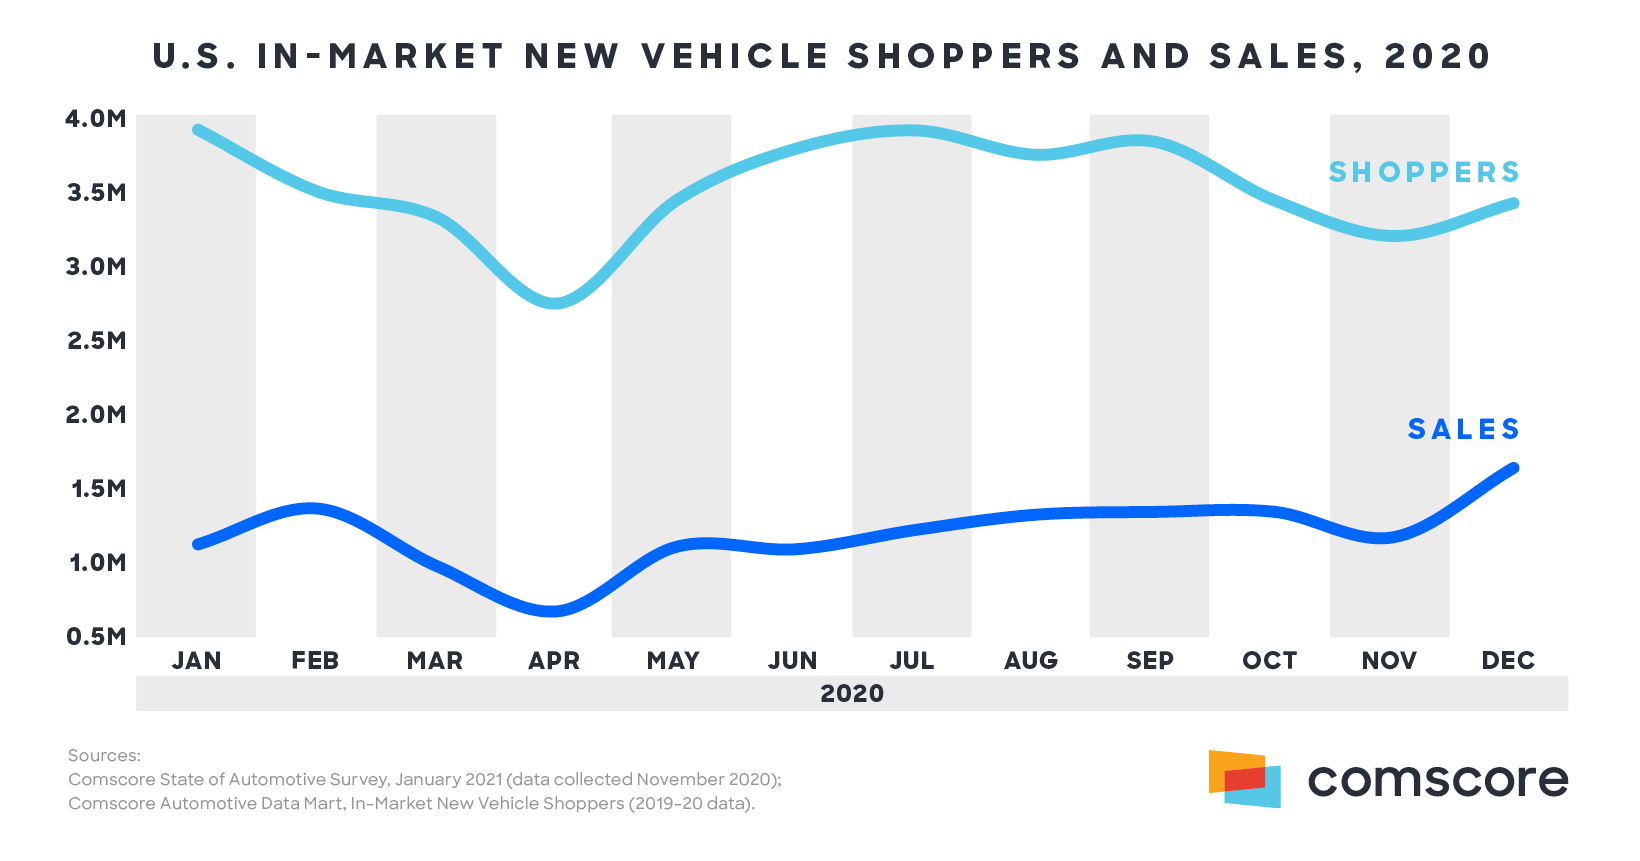 US In-Market New Vehicle Shoppers and Sales, 2020